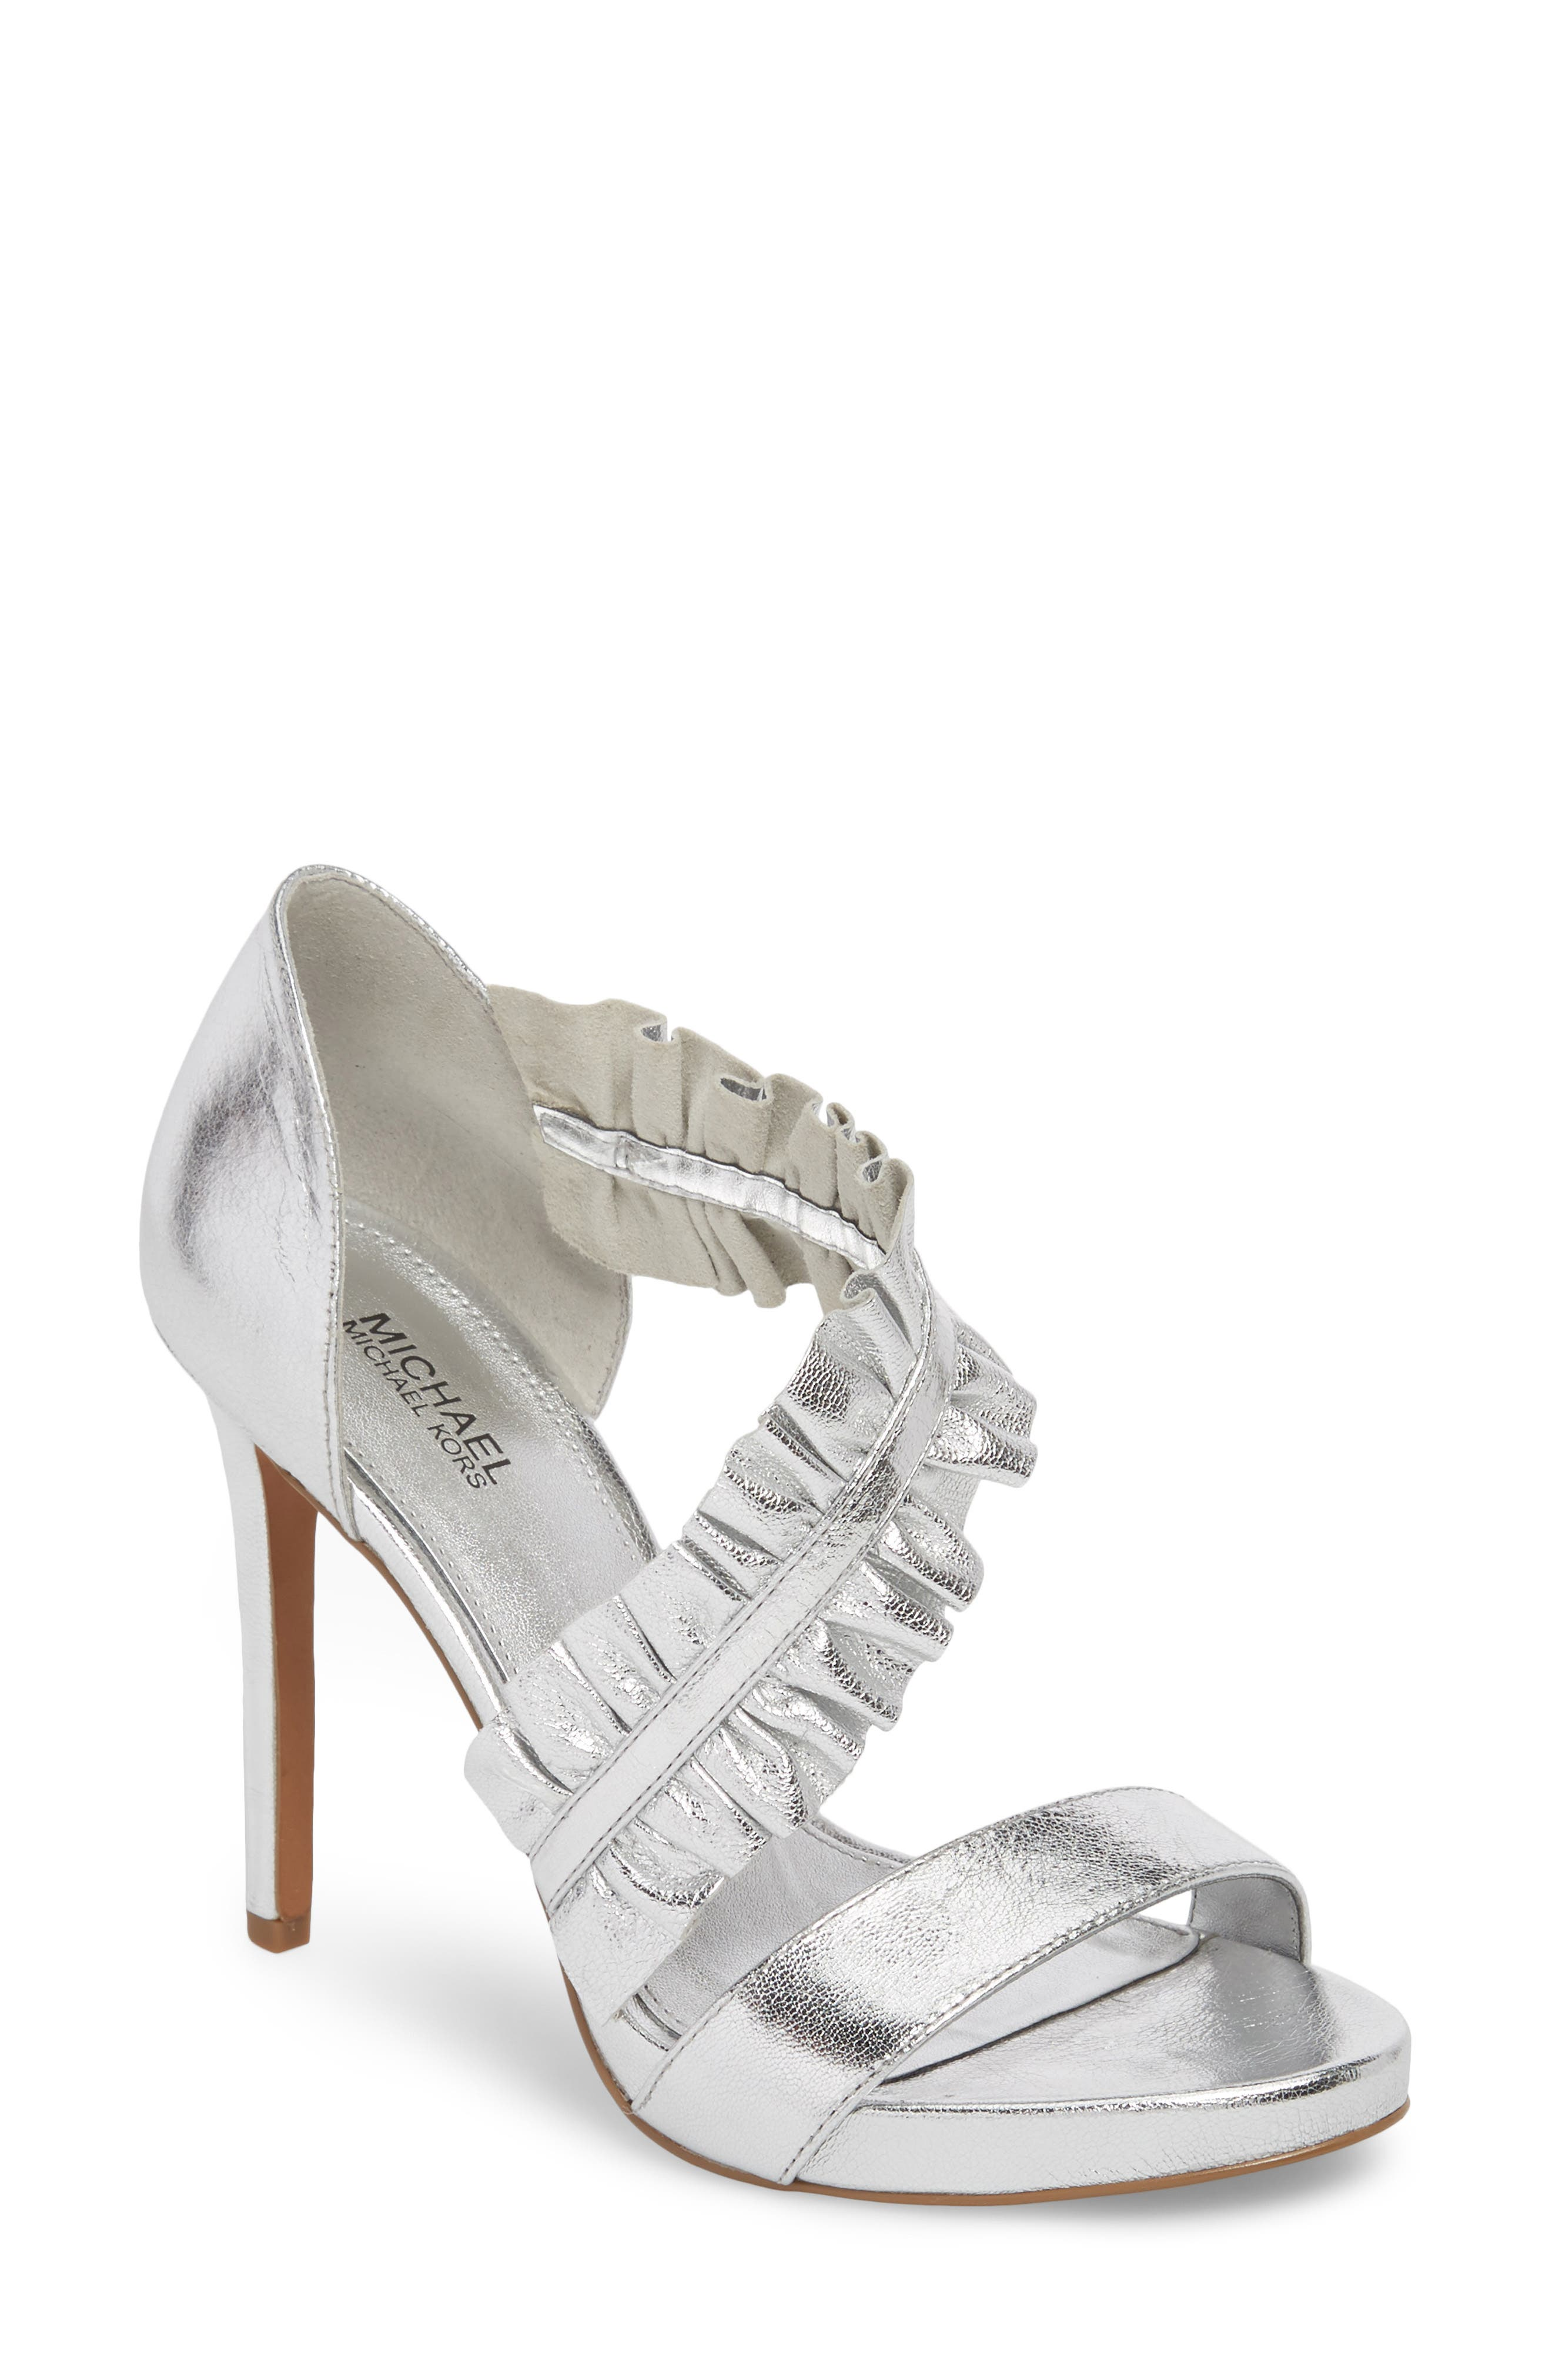 j5kLr5ysz6 Womens Bella Ruffled Leather Platform High-Heel Sandals